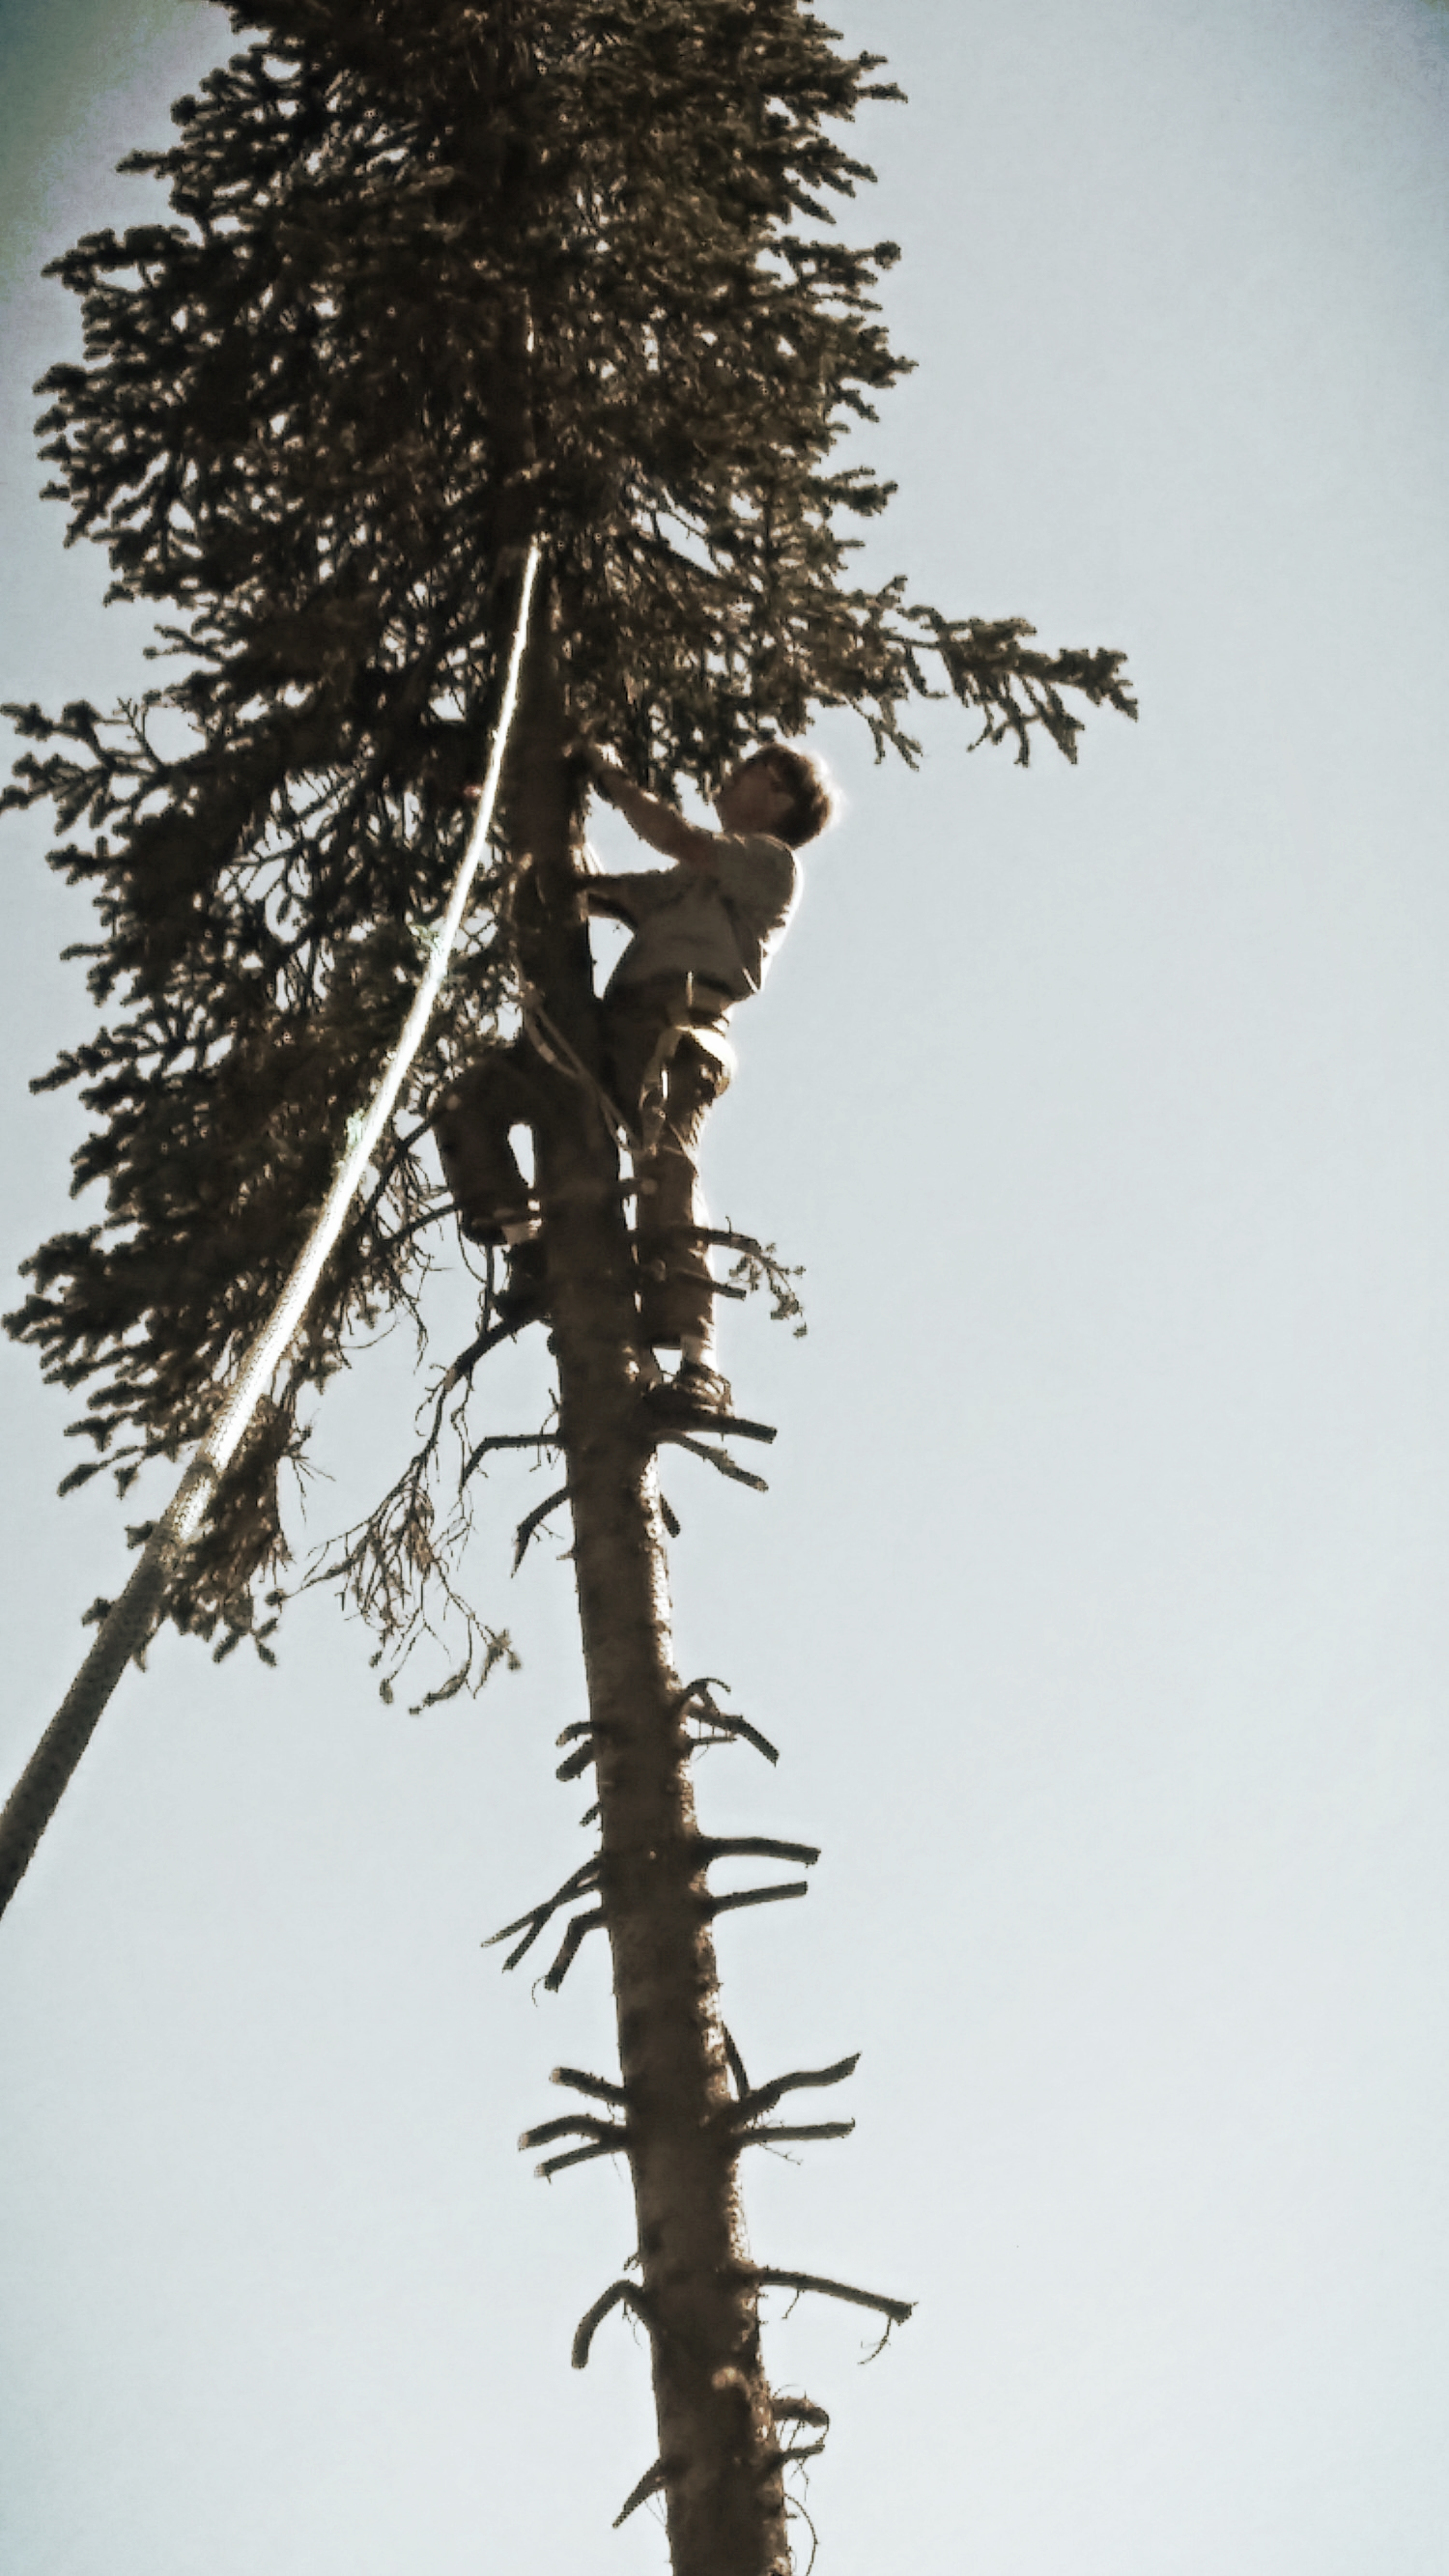 Mike working hard to safely cut down this tree.